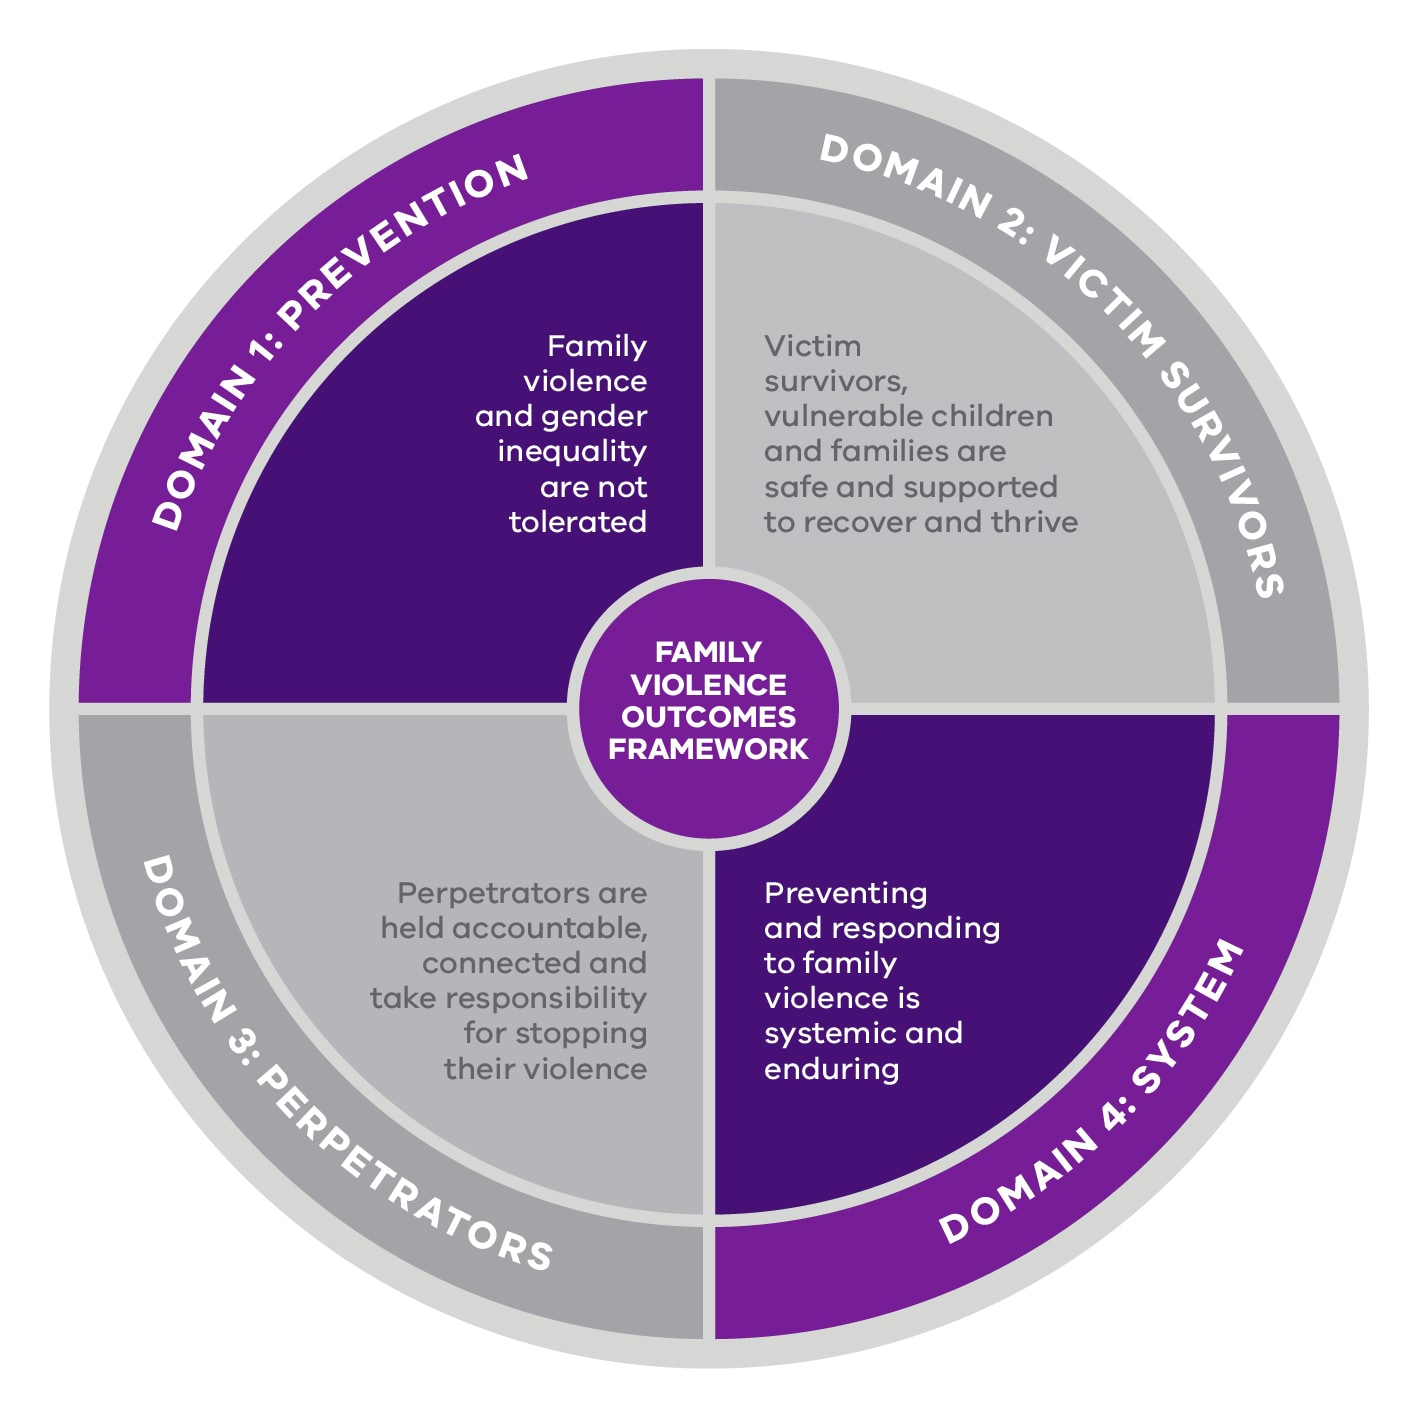 Domain 1, Family violence and gender inequality are not tolerated. Domain 4, Preventing and responding to family violence is systemic and enduring.